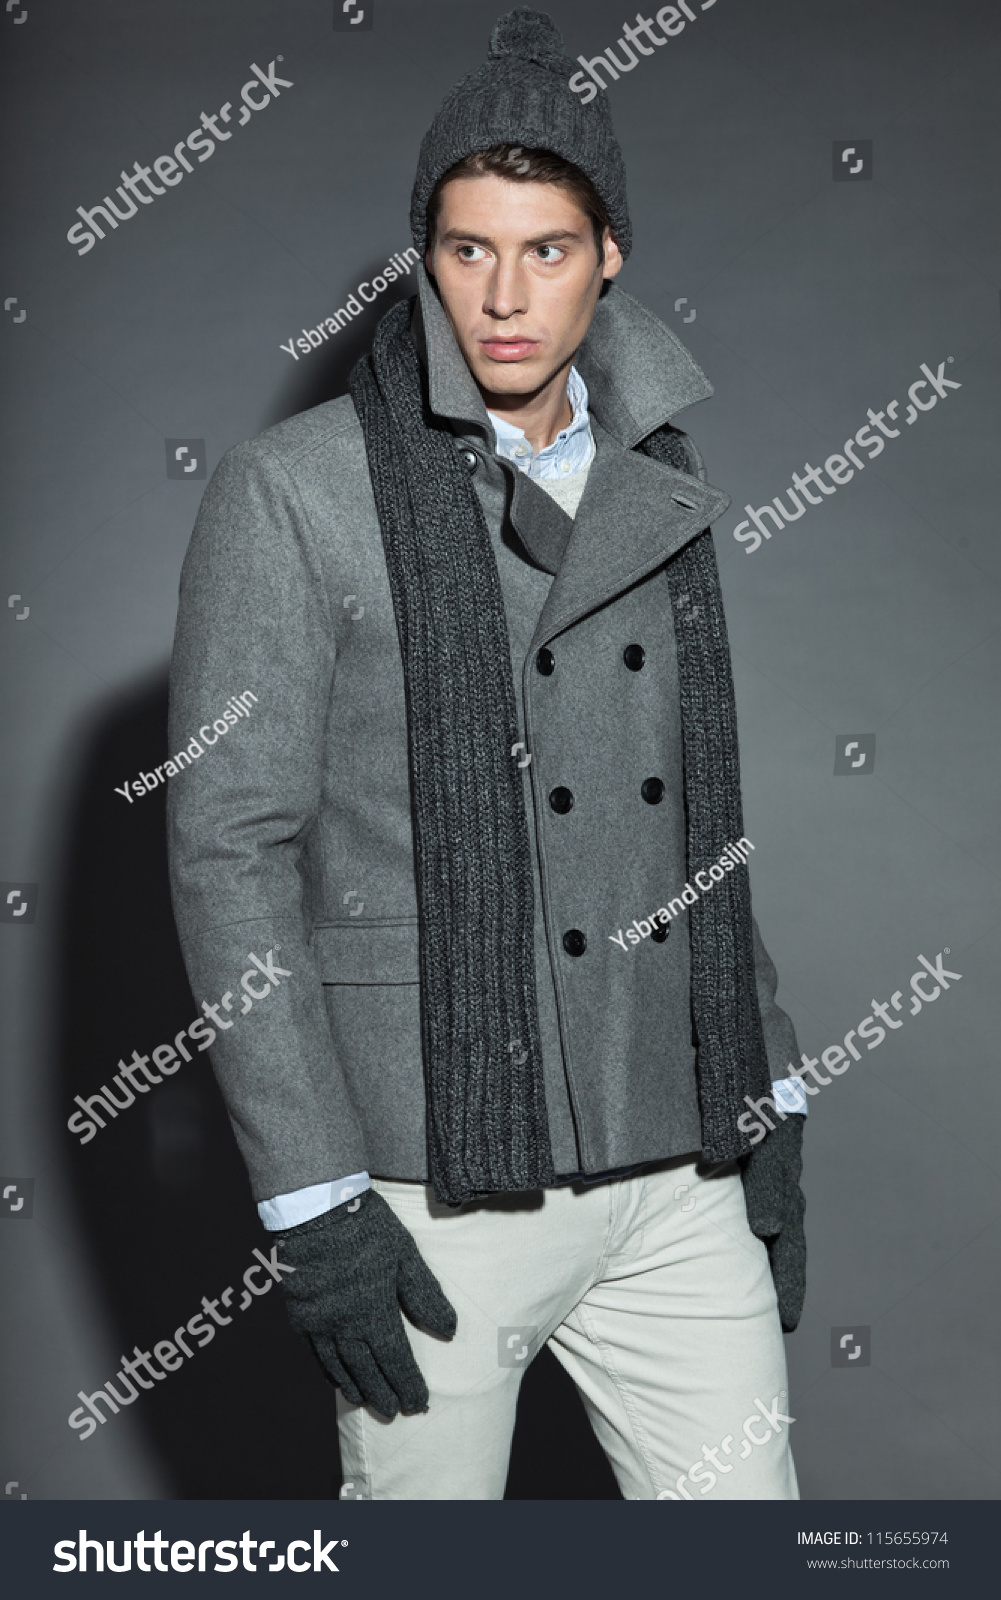 Men winter fashion. Handsome man with brown hair wearing grey scarf 1d71fae3f8b